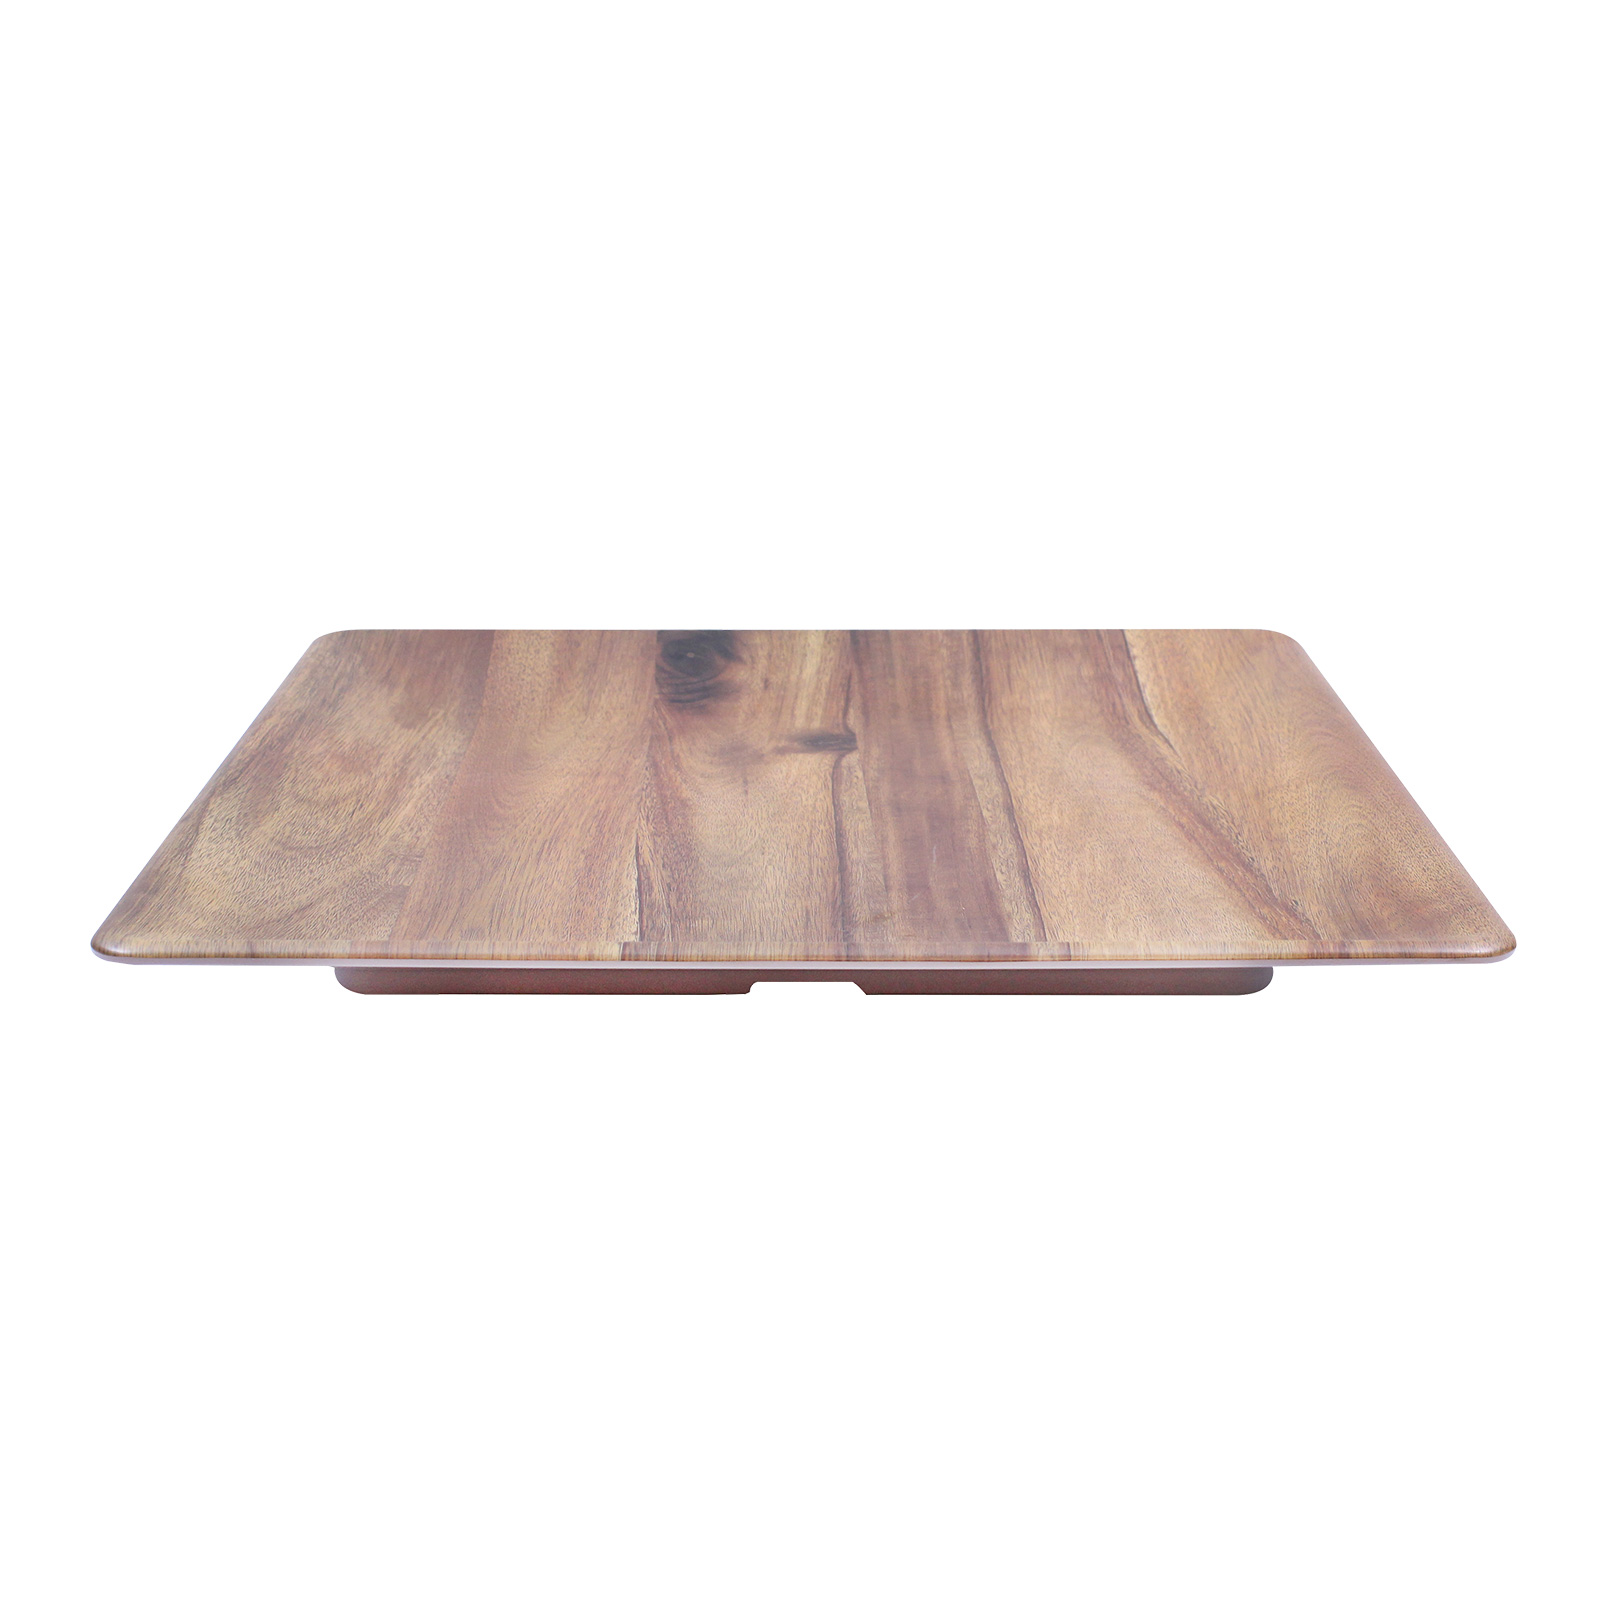 TableCraft Products M1414ACA serving & display tray